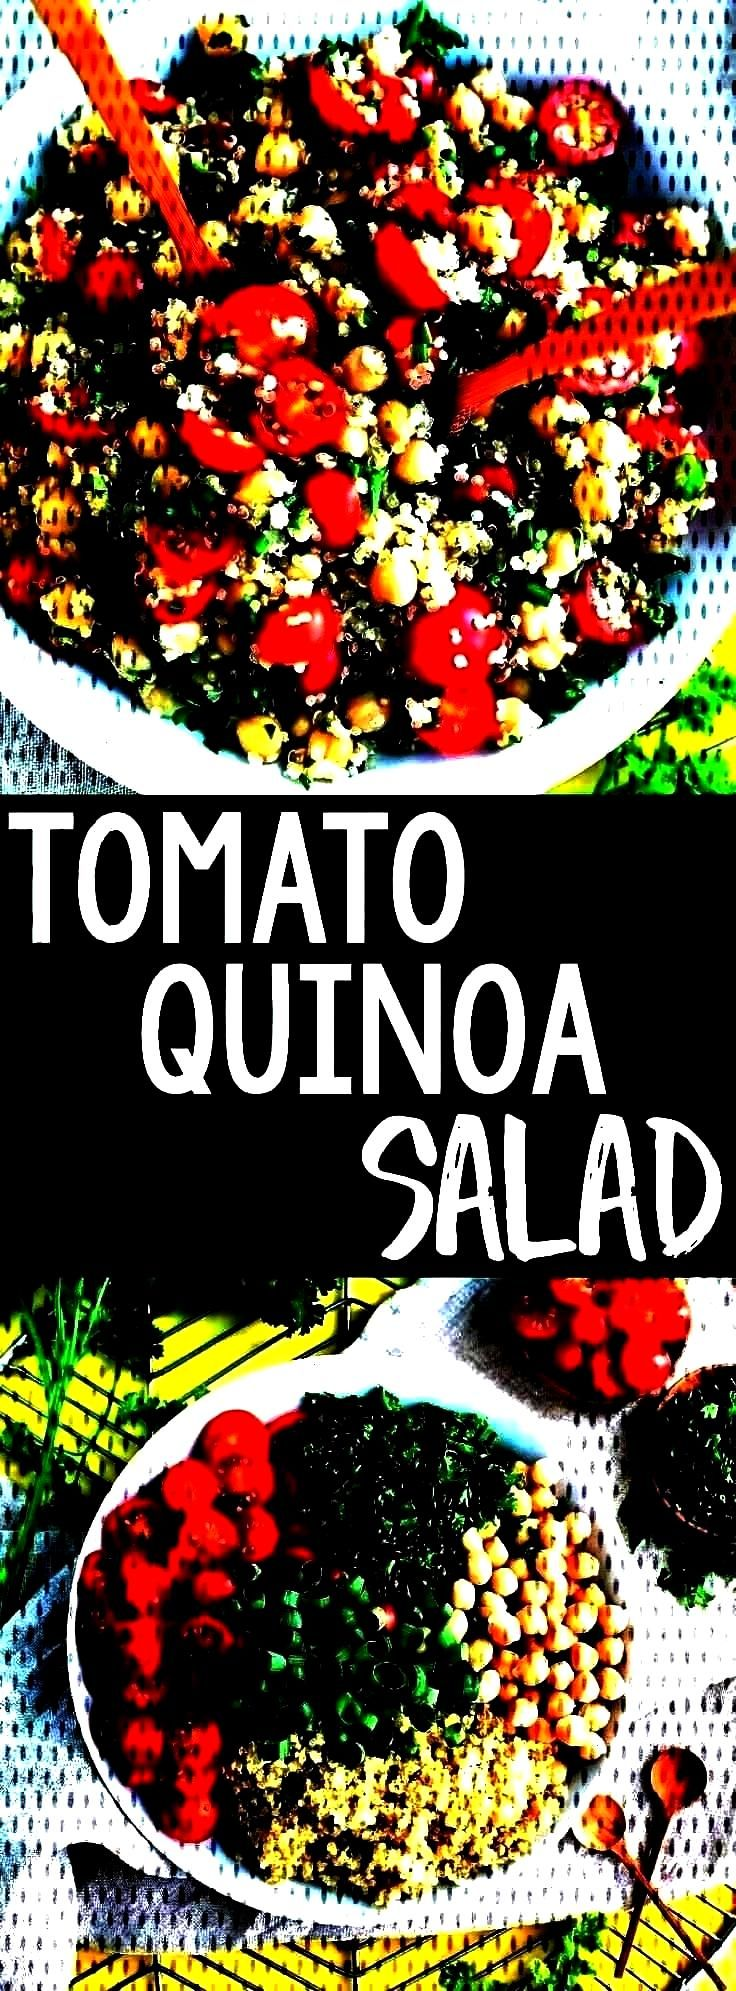 quinoa recipe to our meal prep game! This Tomato Quinoa Salad is fast, flavorfto add another tasty